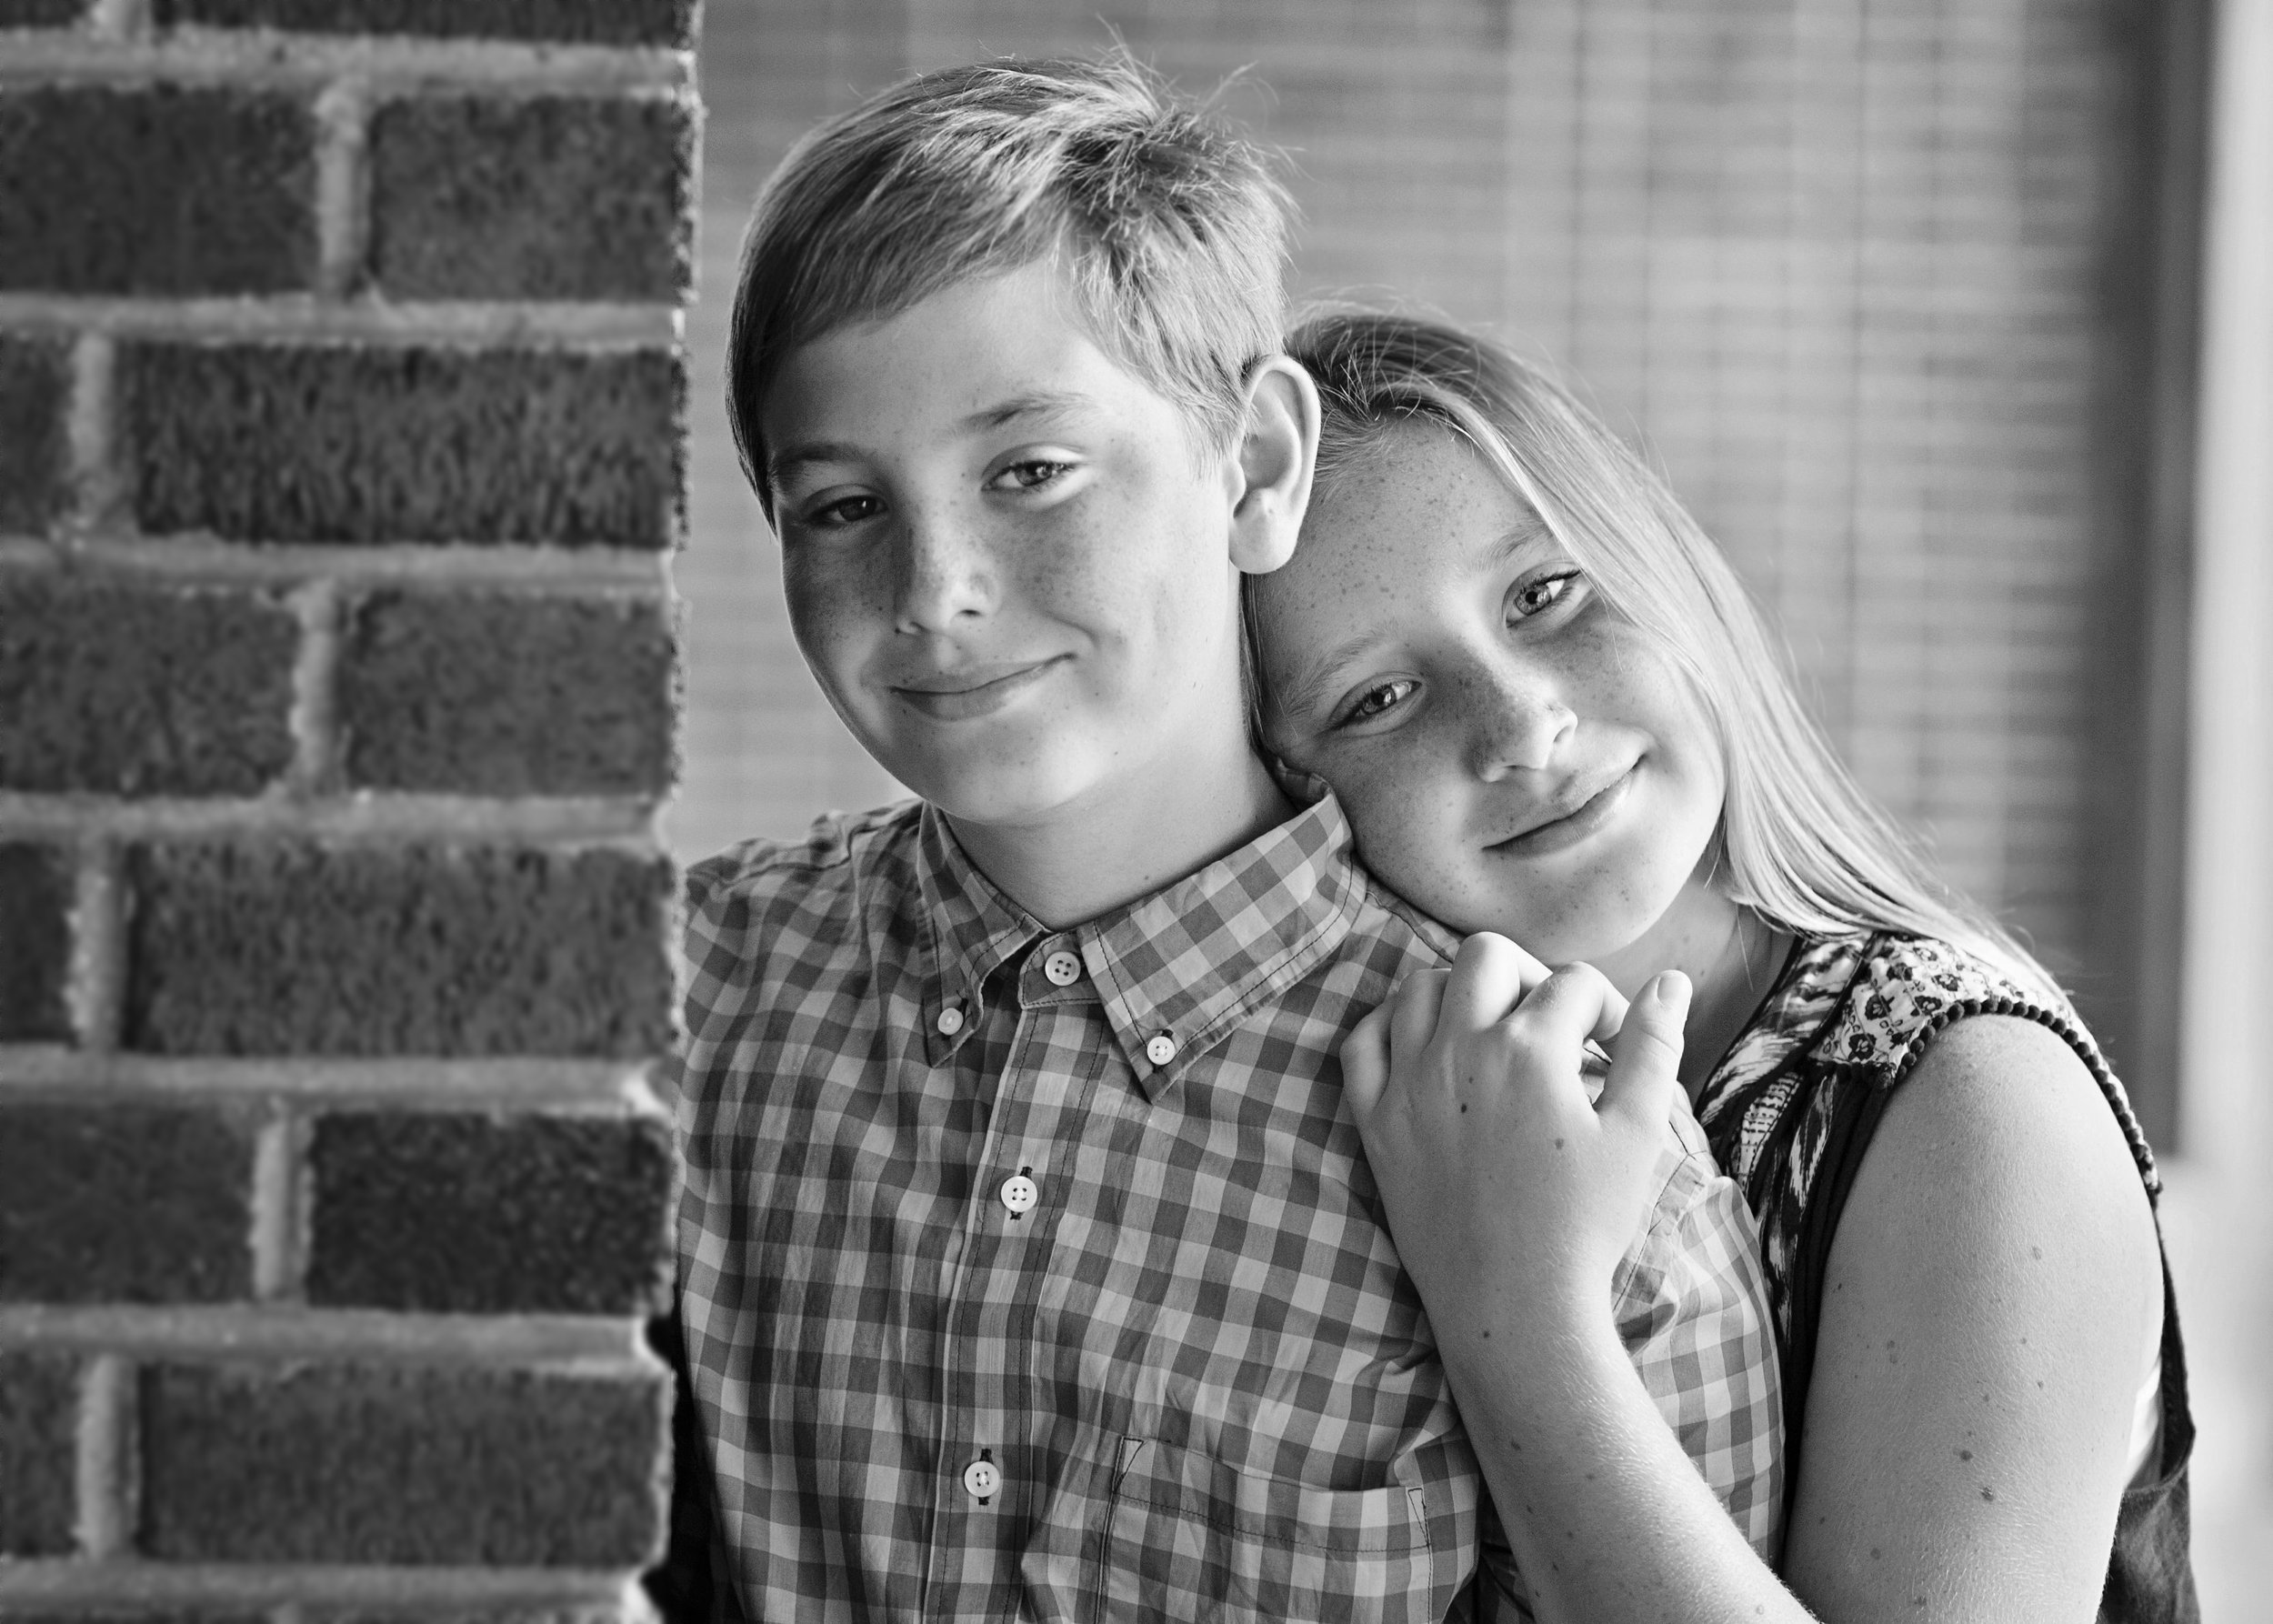 sibling-love-connection-ninapomeroy-minisession-photographer.jpg